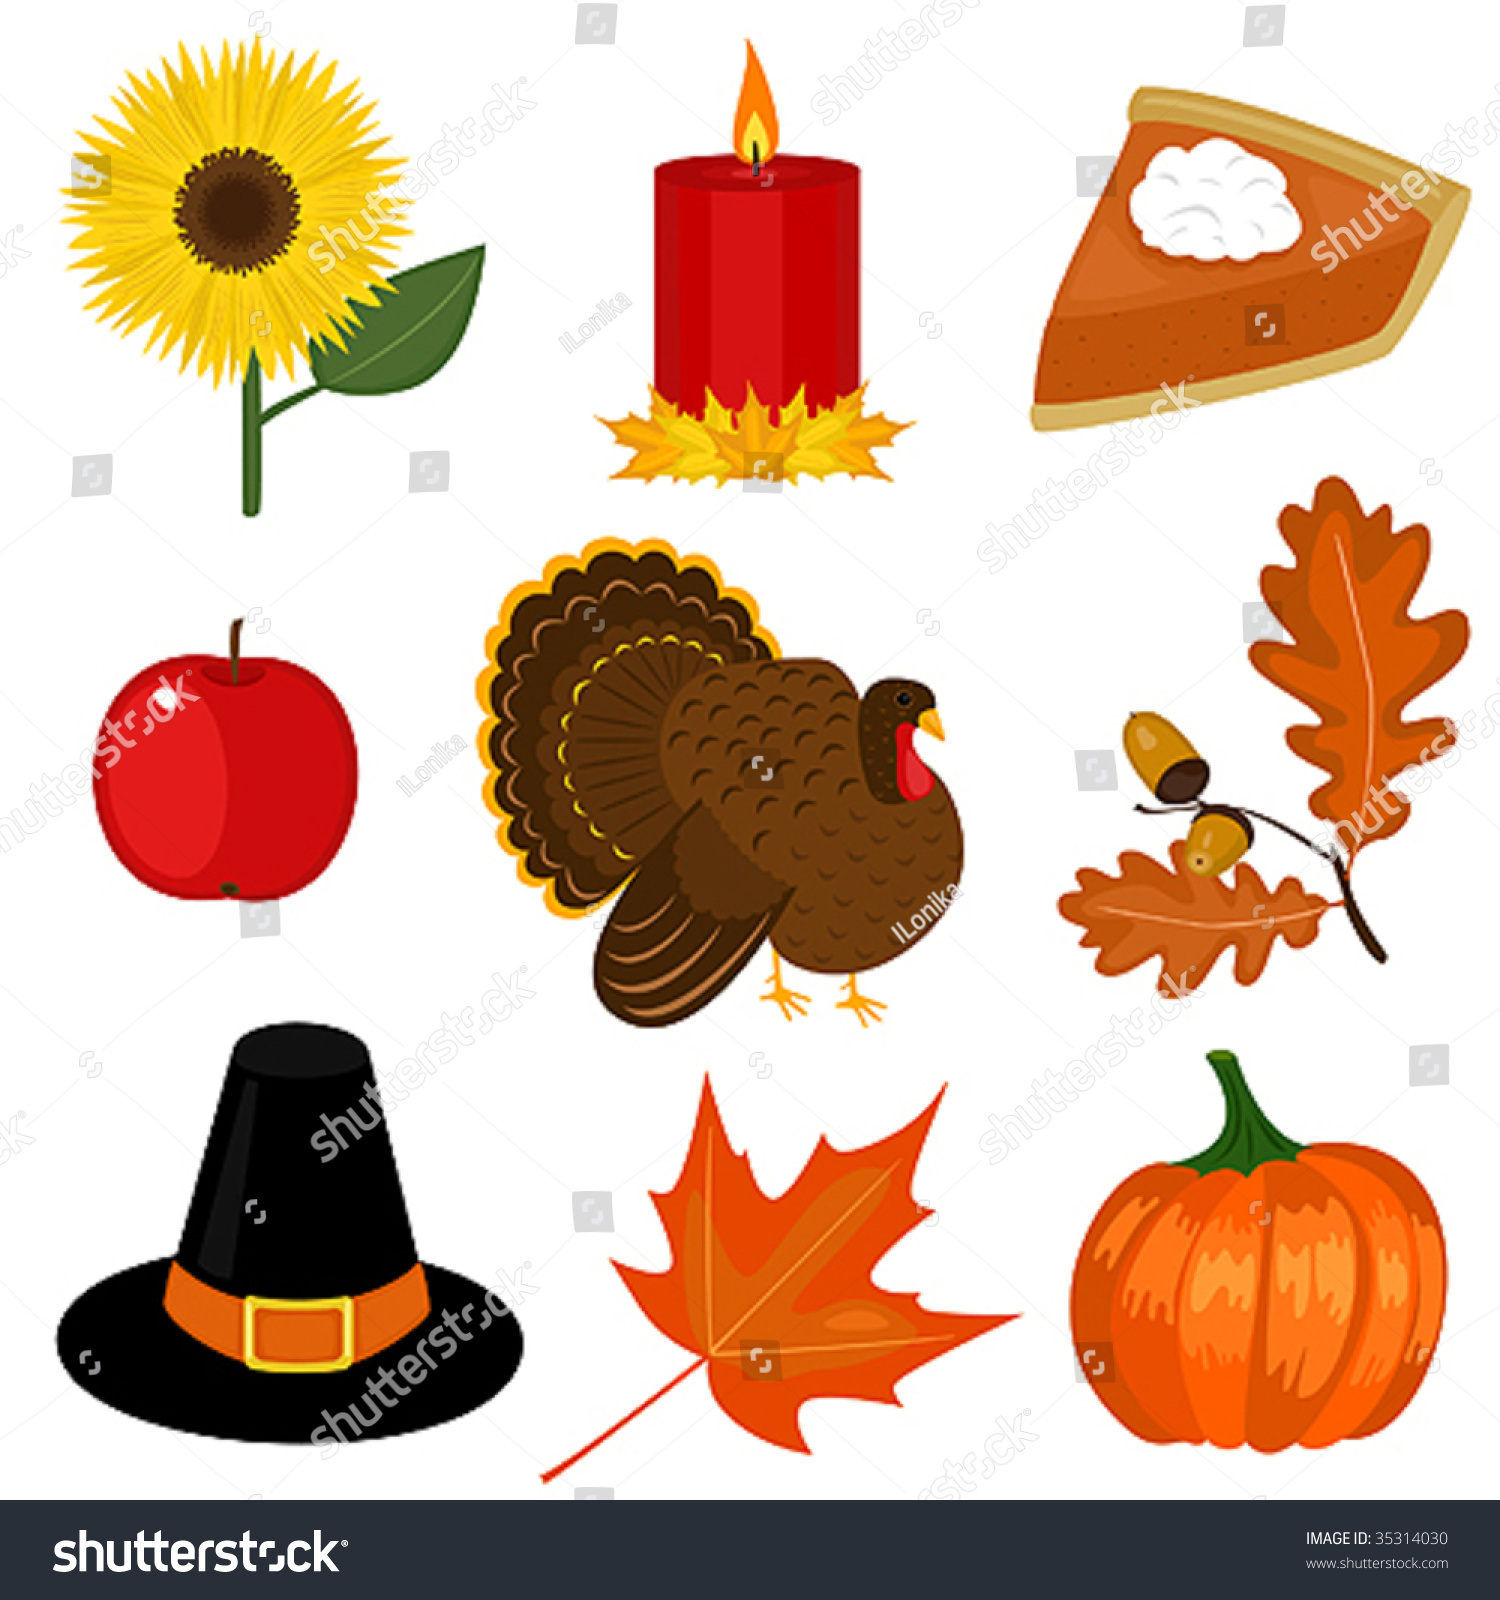 thanksgiving day clipart stock vector 35314030 shutterstock rh shutterstock com clipart for thanksgiving day thanksgiving day animated clipart